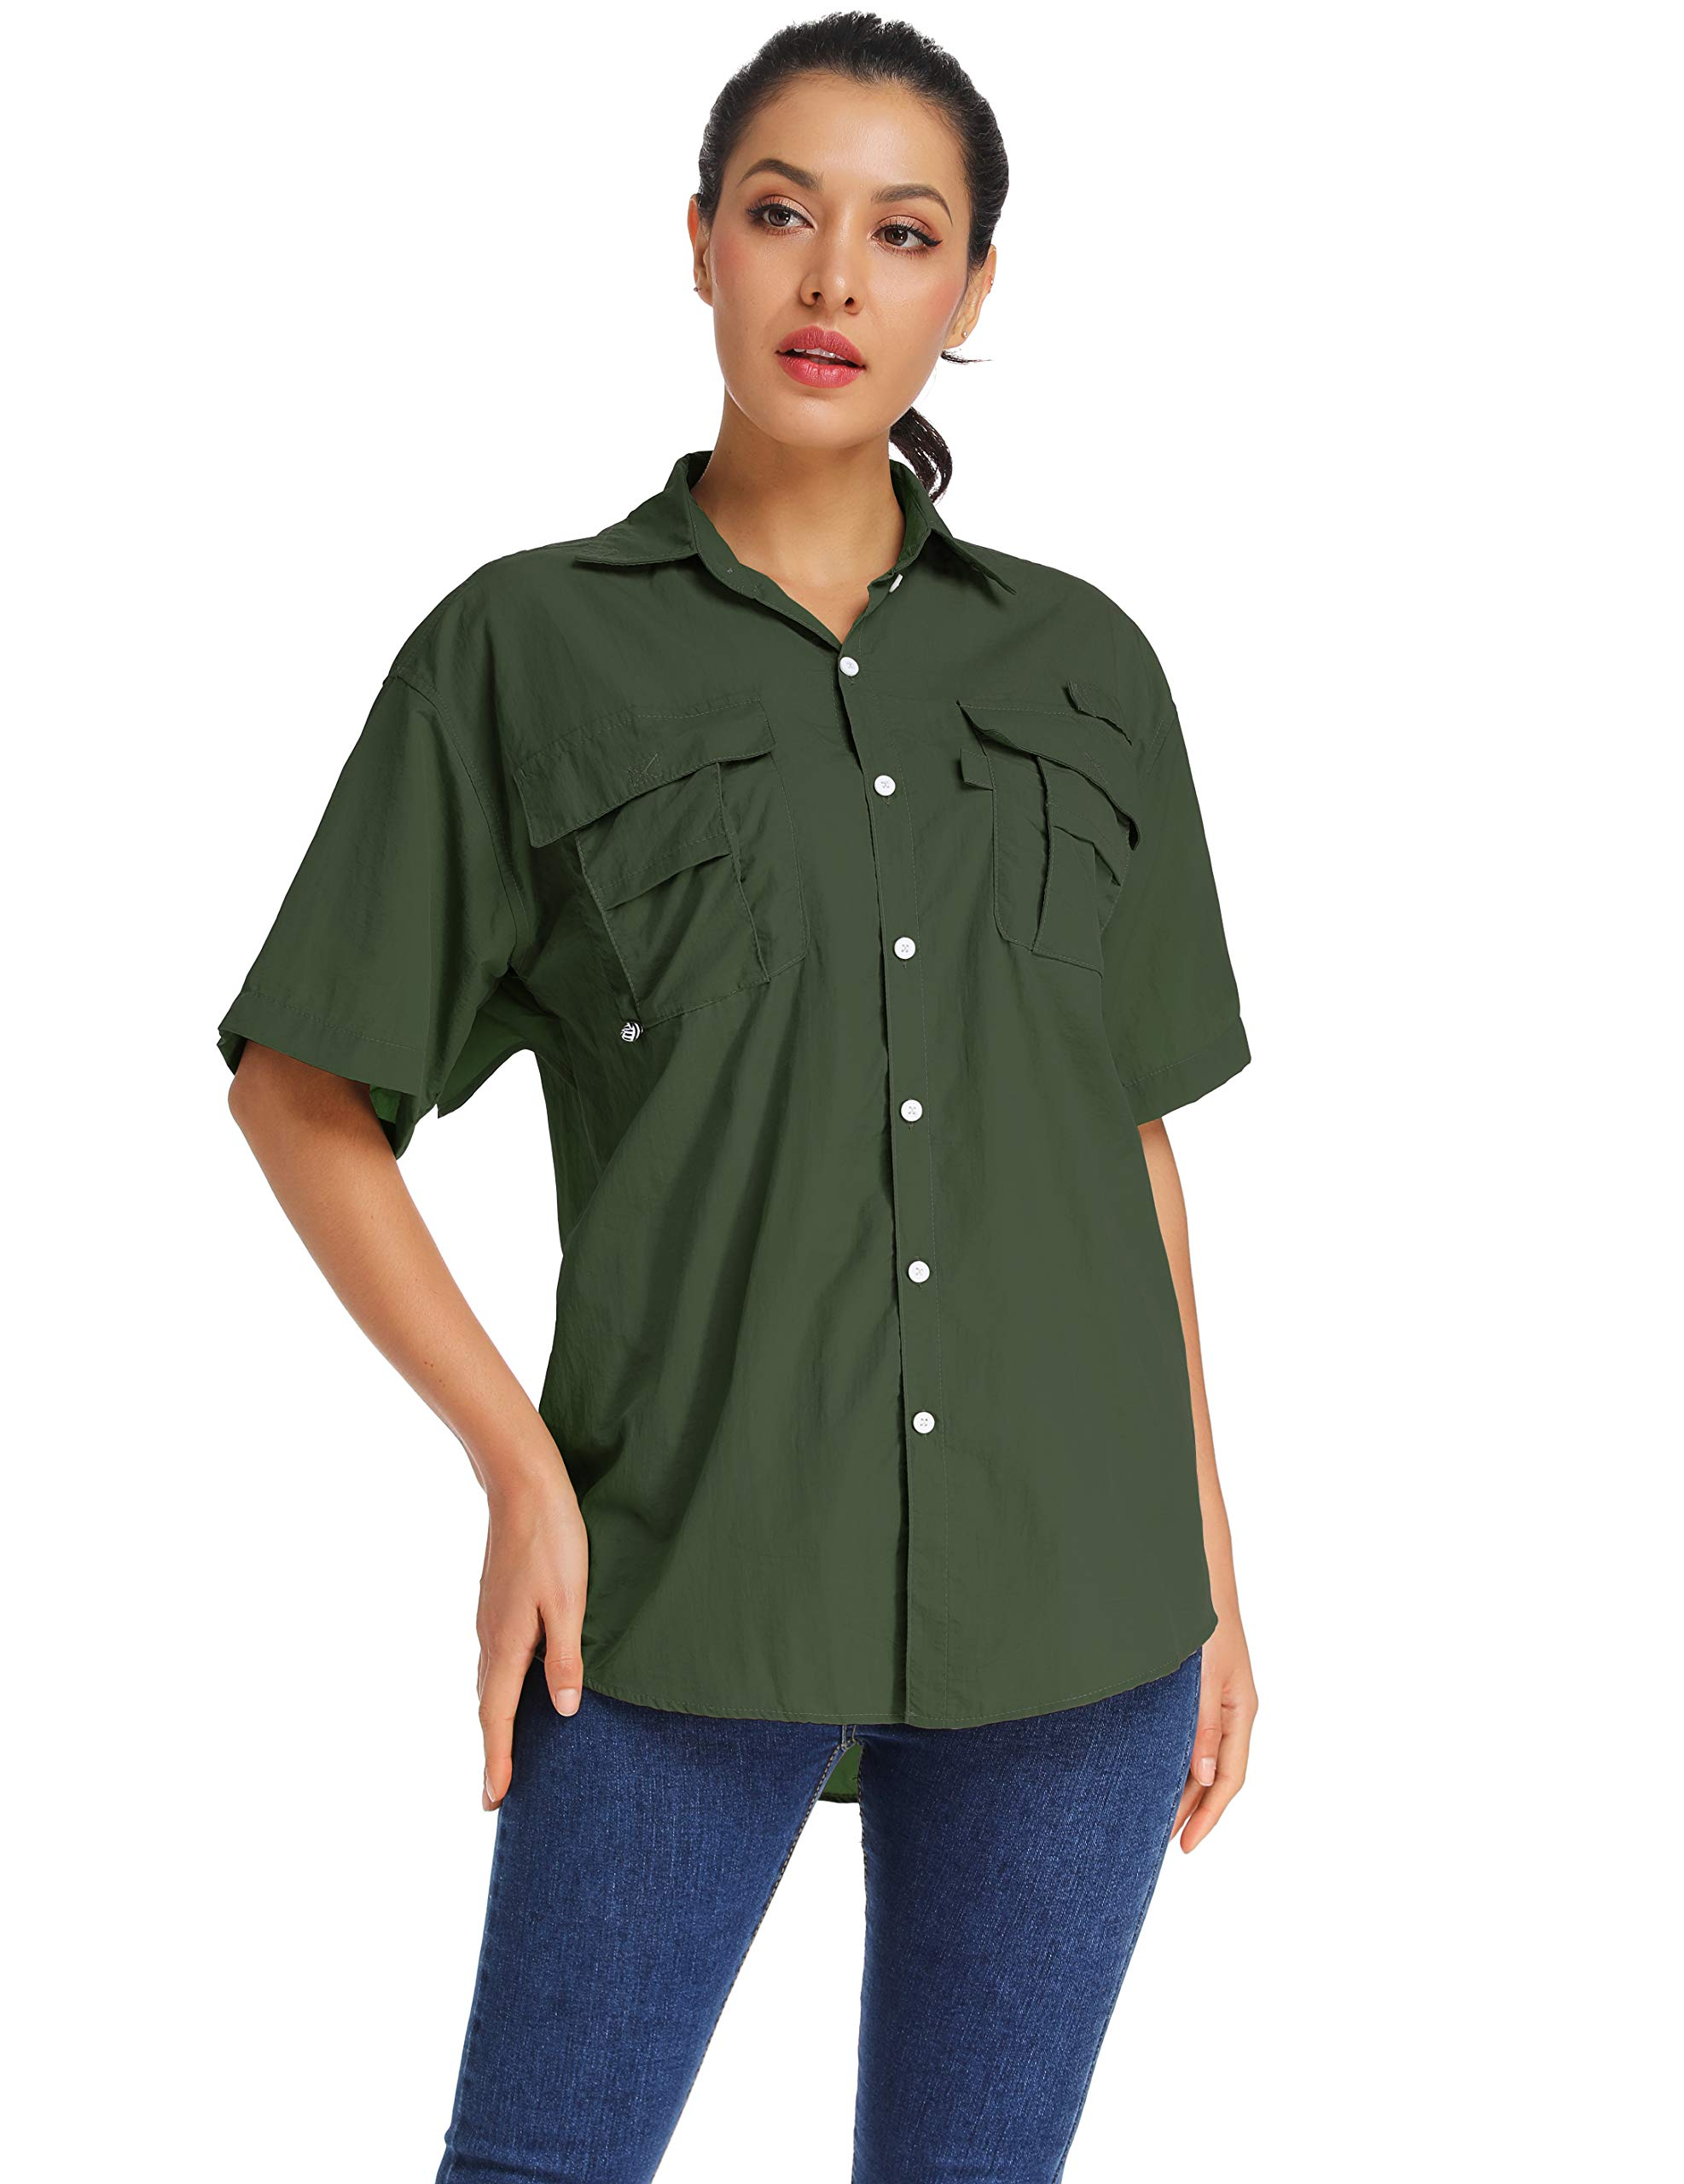 Women's Quick Dry Sun Protection Short Sleeve Wicking Shirts for Hiking Camping Fishing Sailing (17 Army Green, X-Large)